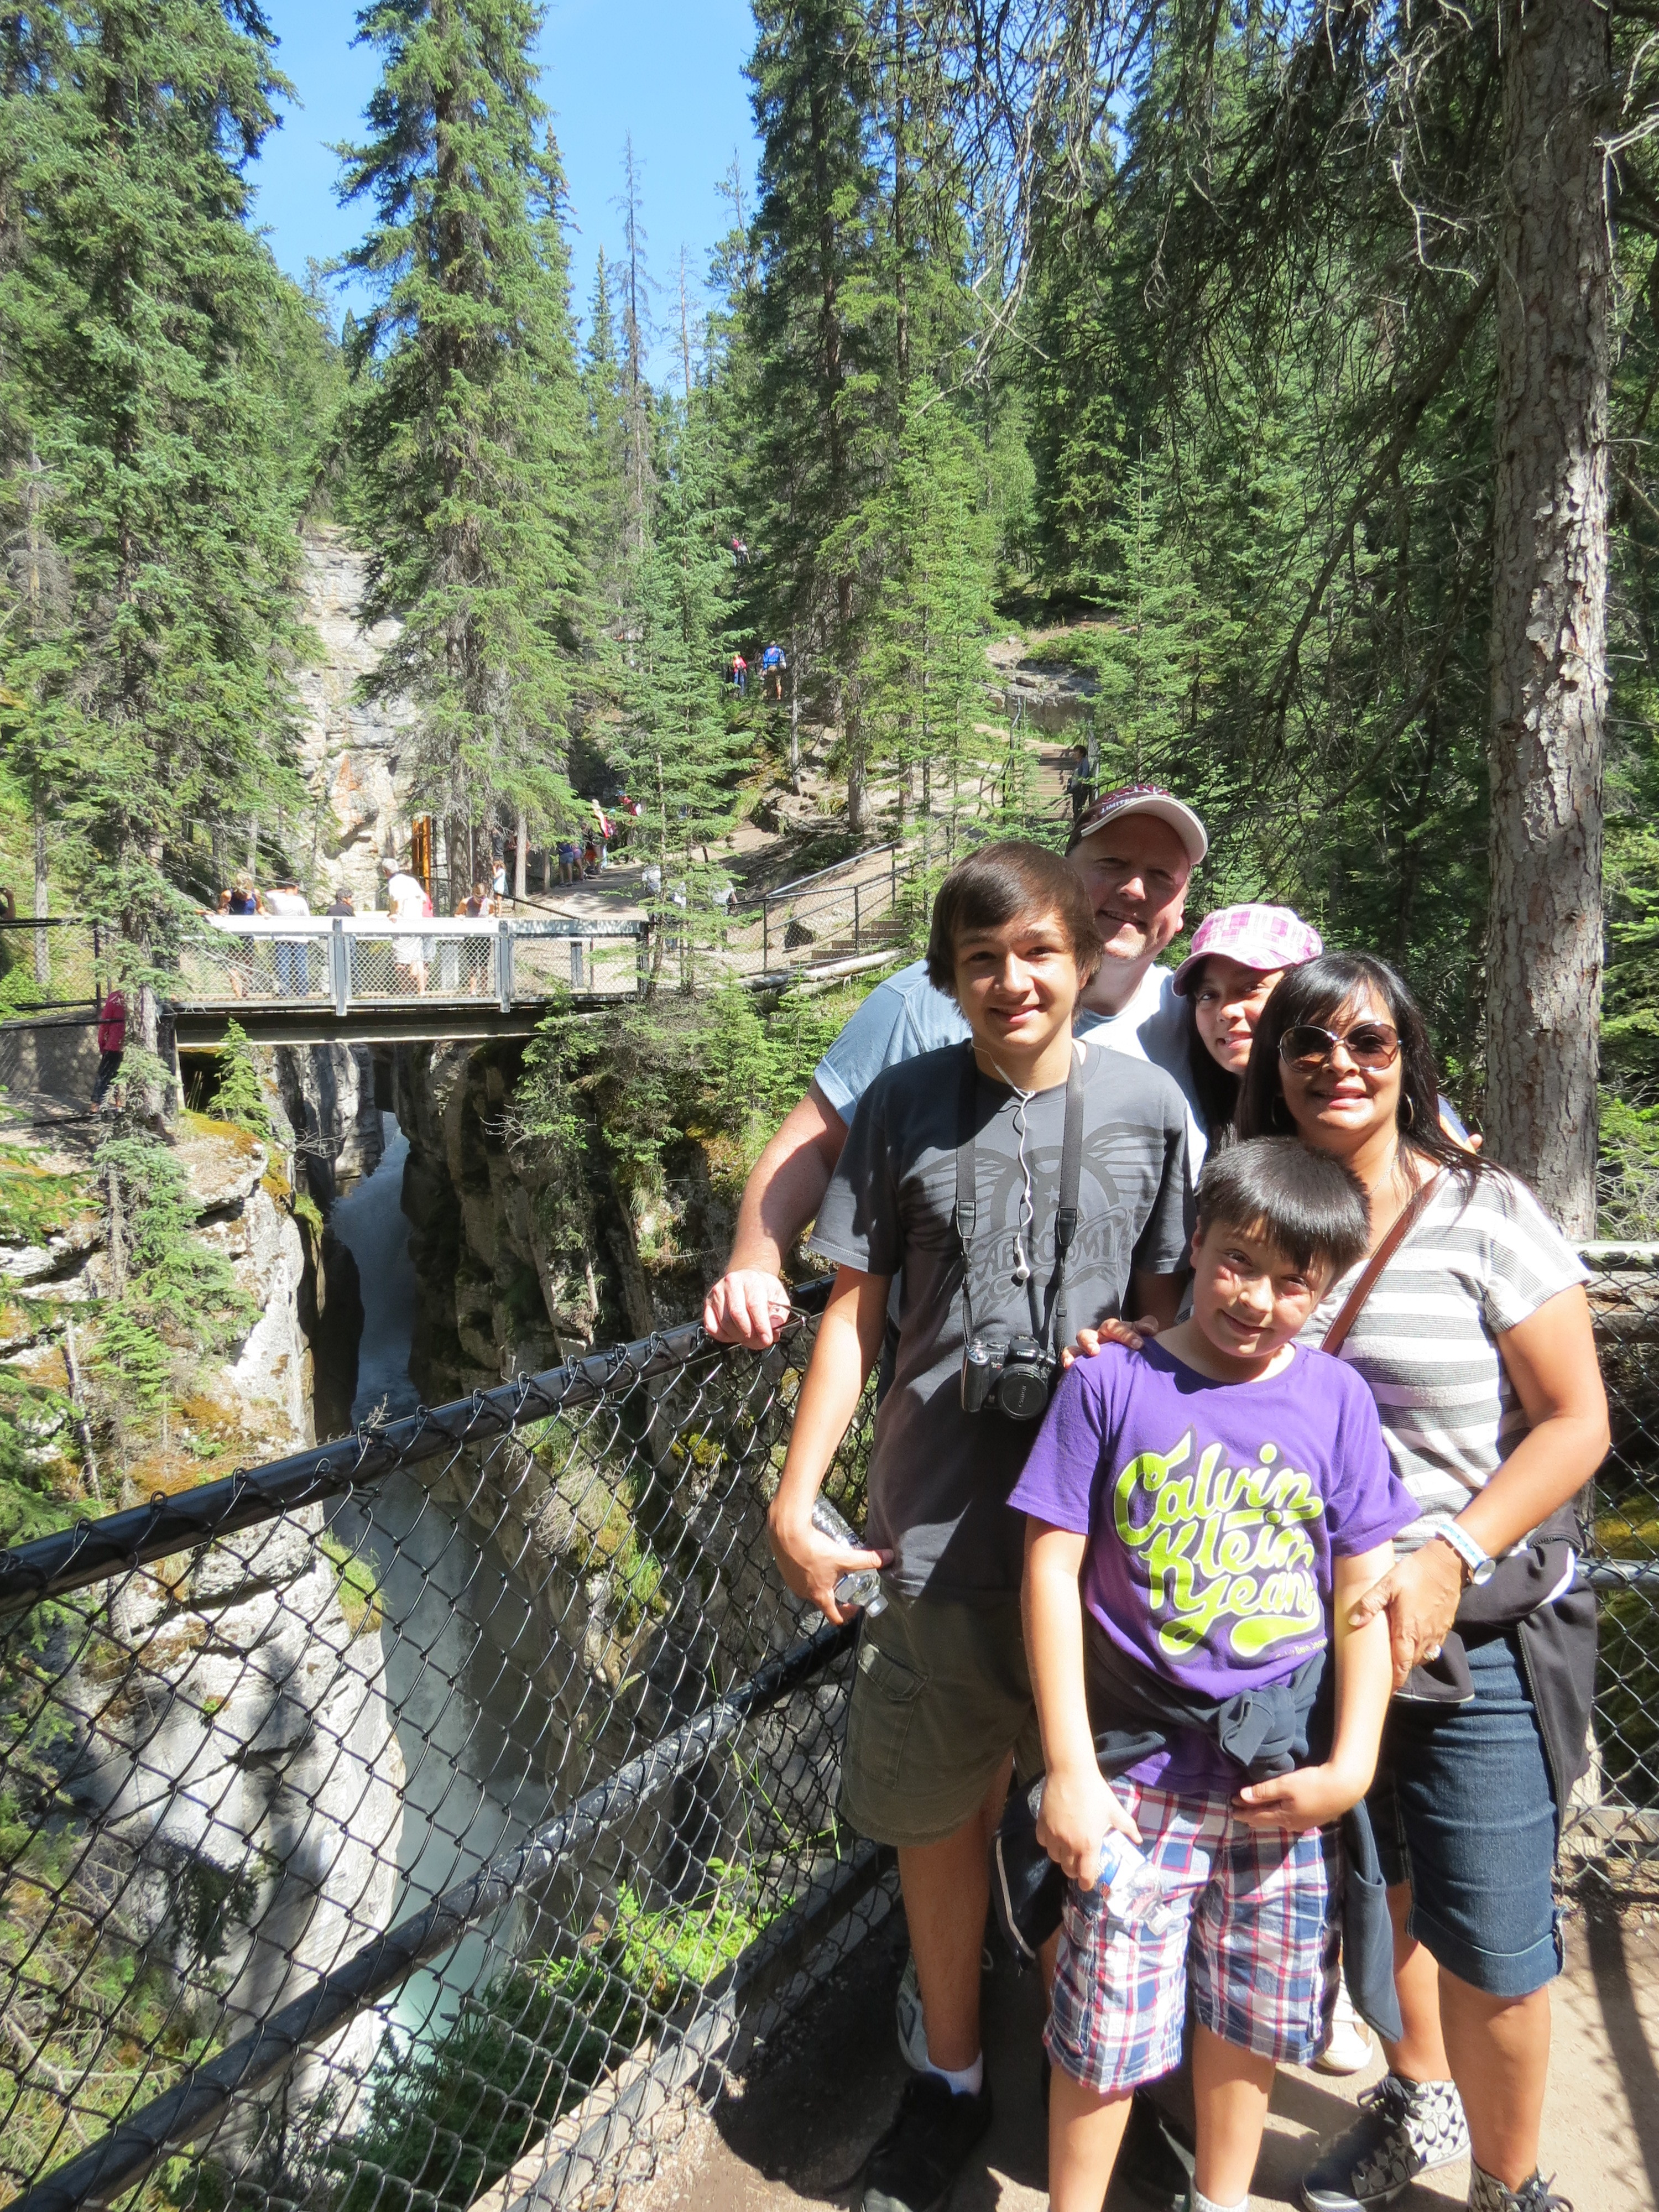 Our Rocky Mountain Family Adventure: Part III